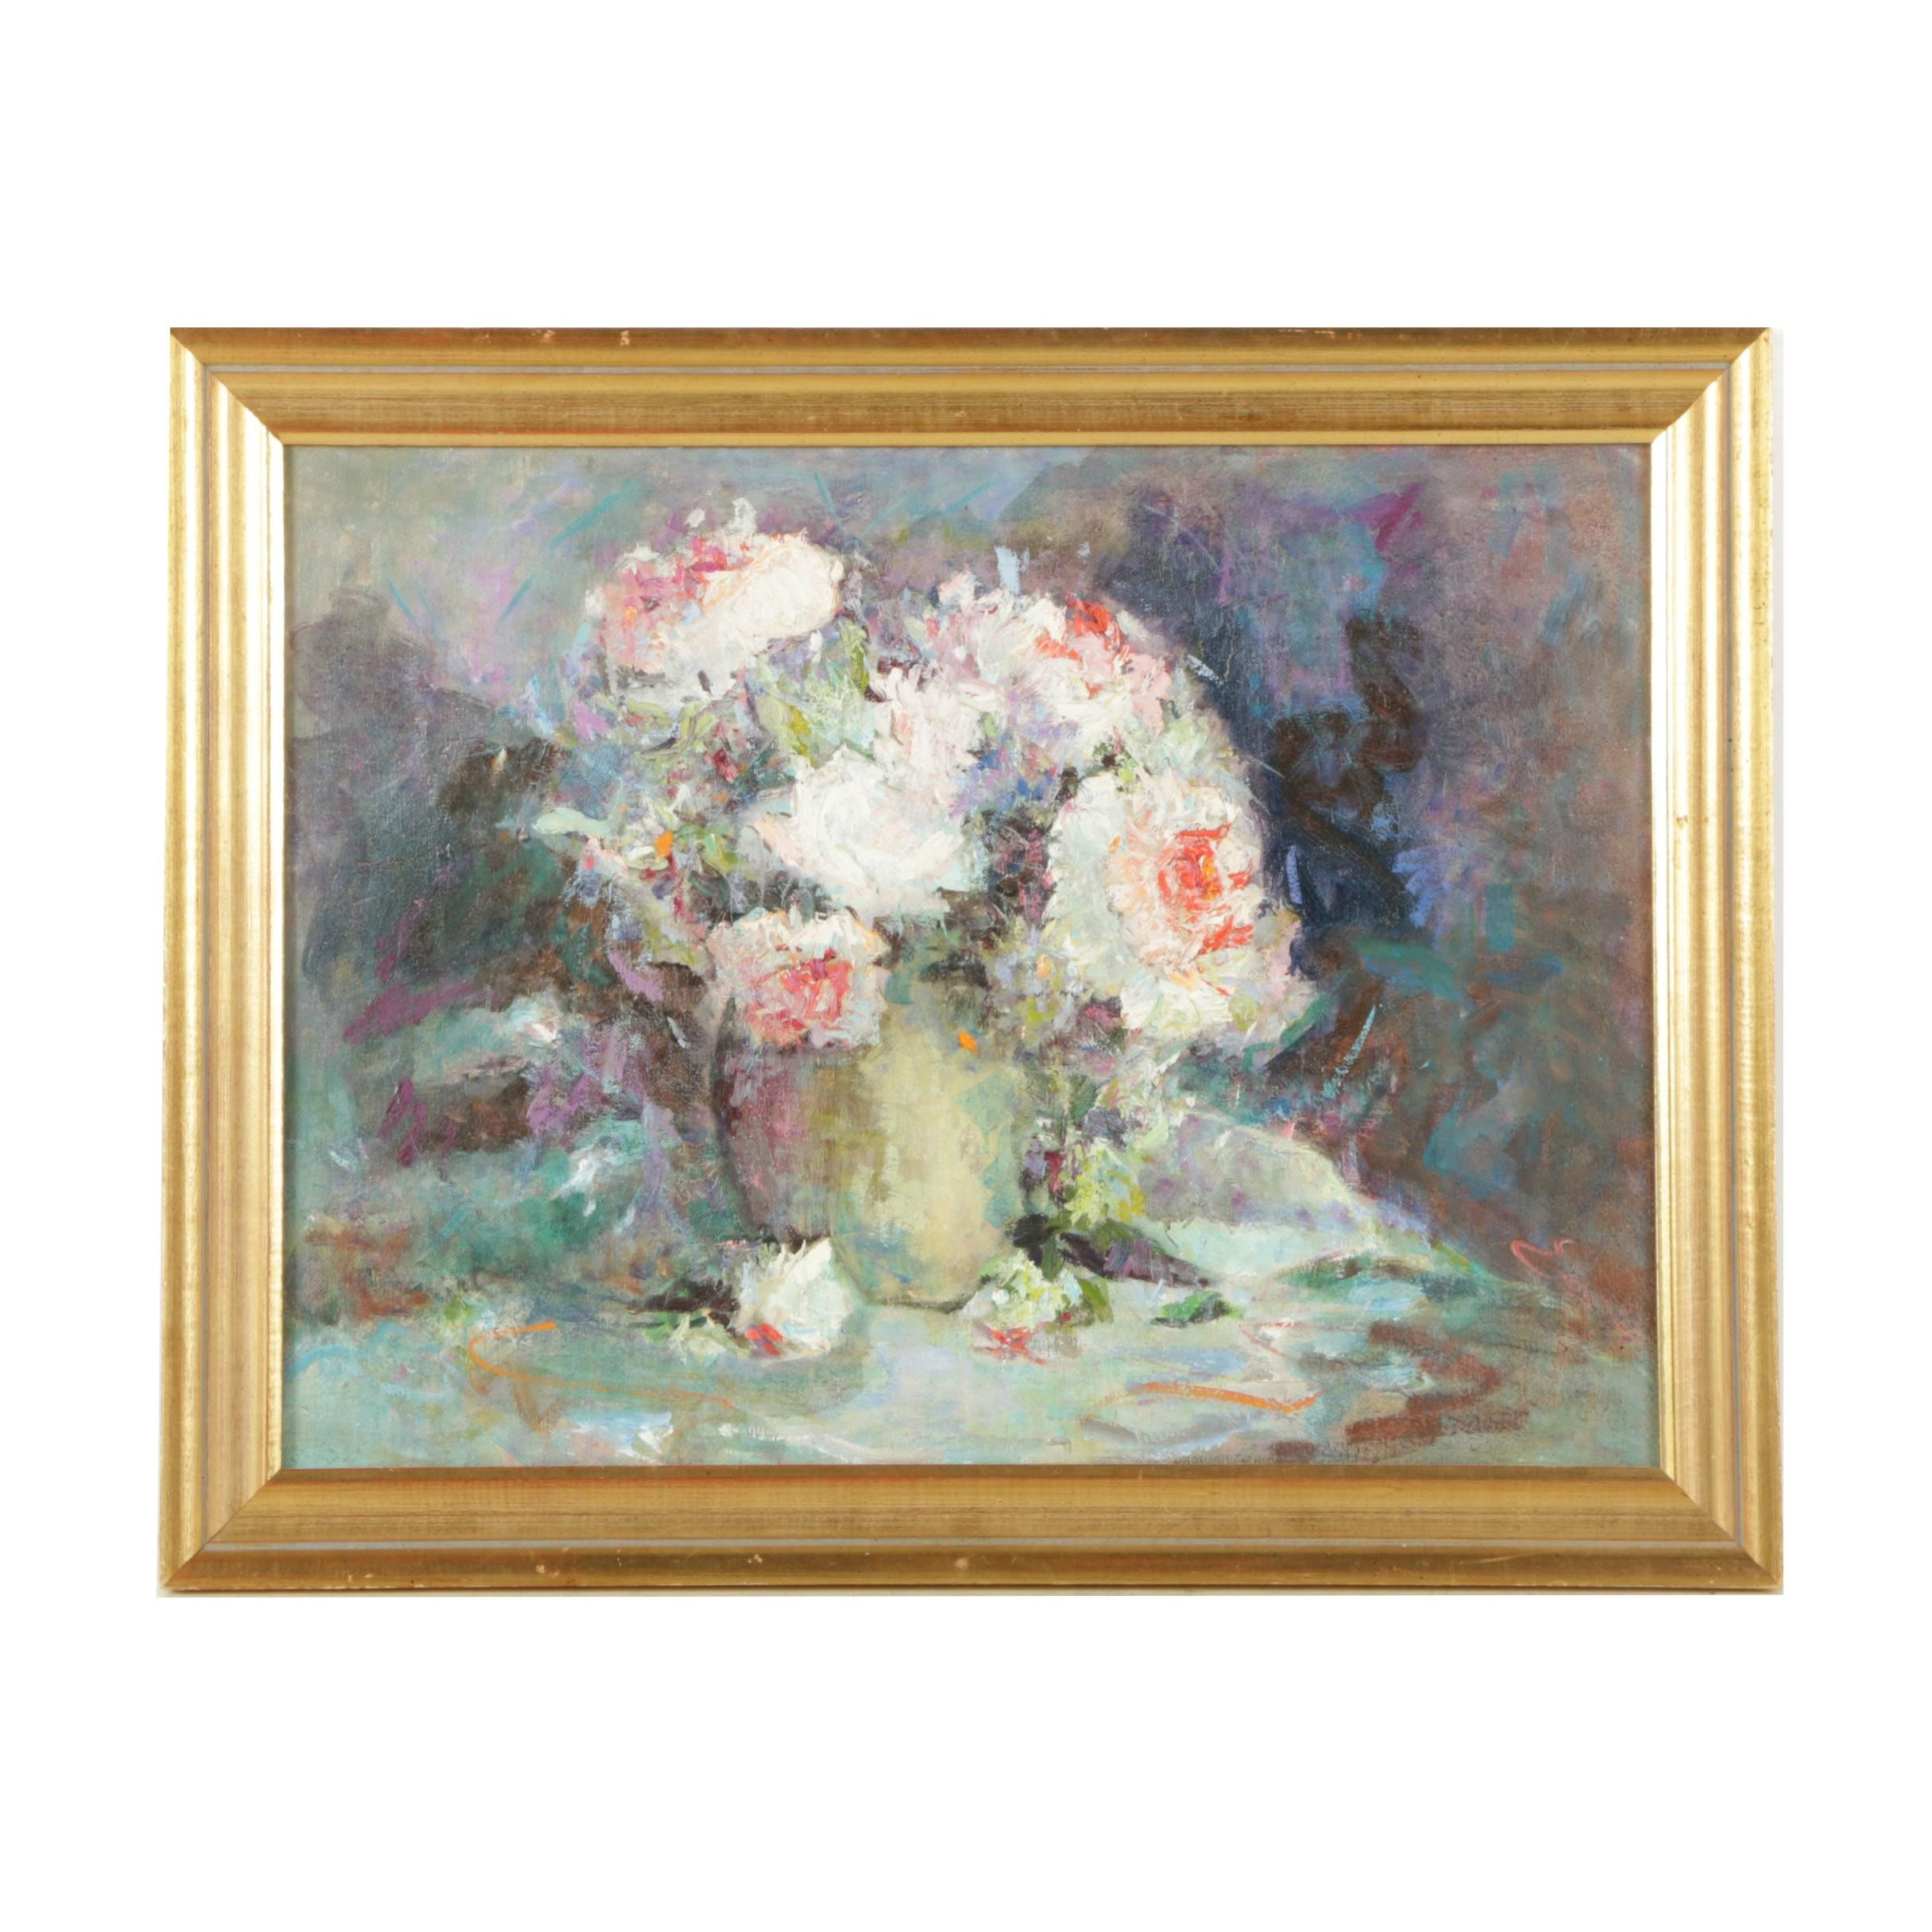 Emmalene Hall Tackett 1981 Oil Painting on Canvas Floral Still Life